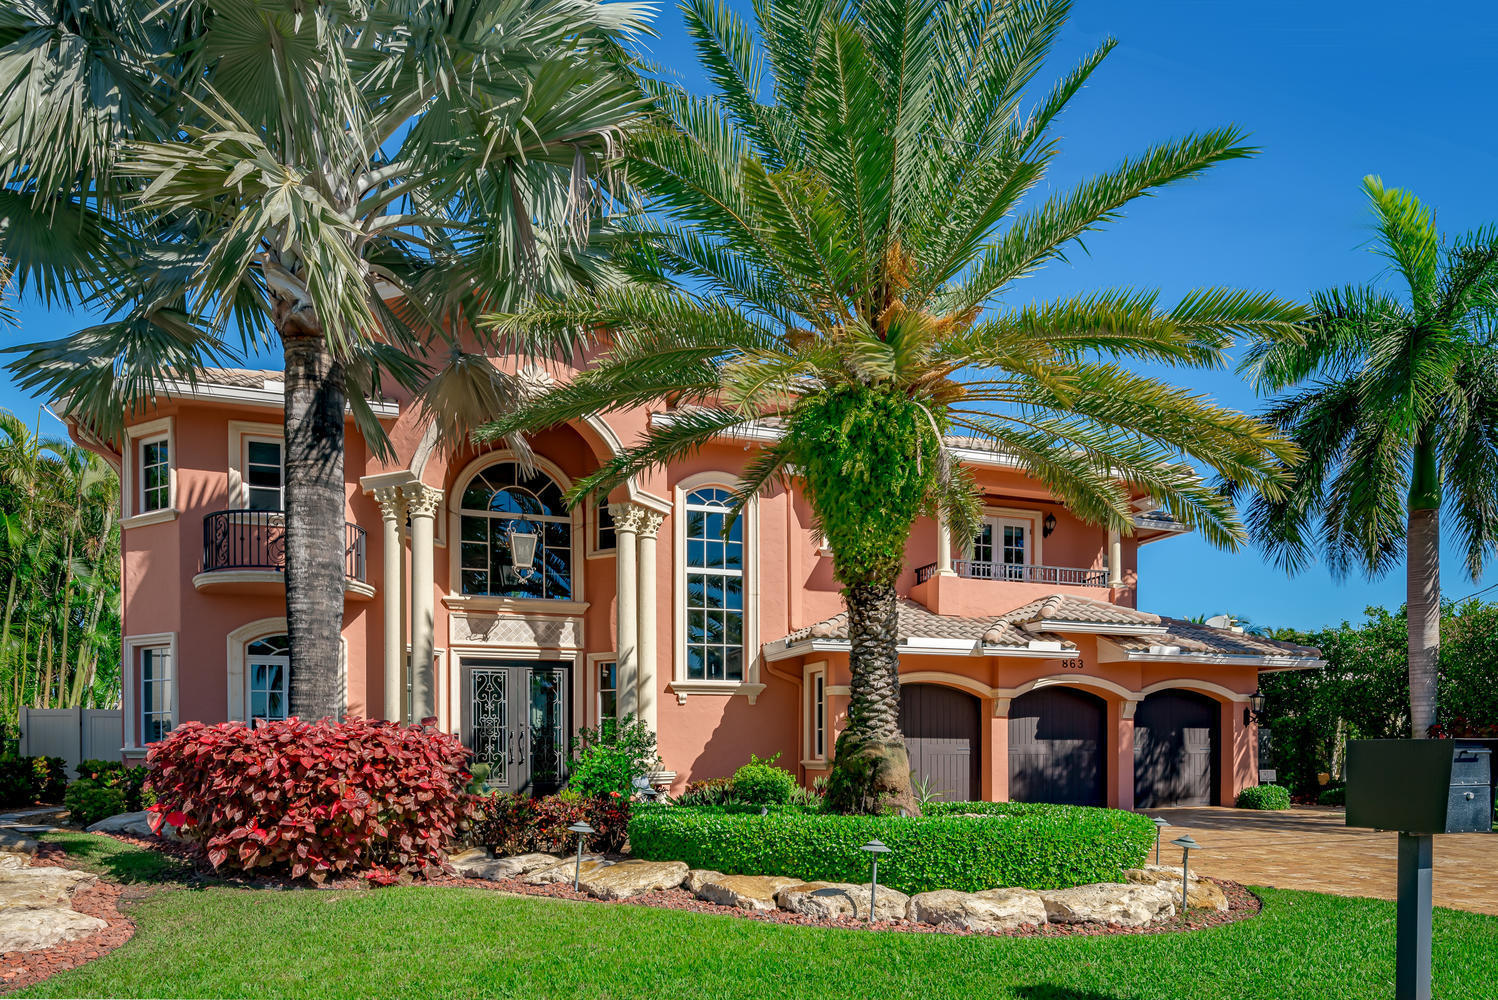 Home for sale in Bel Mara Boca Raton Florida